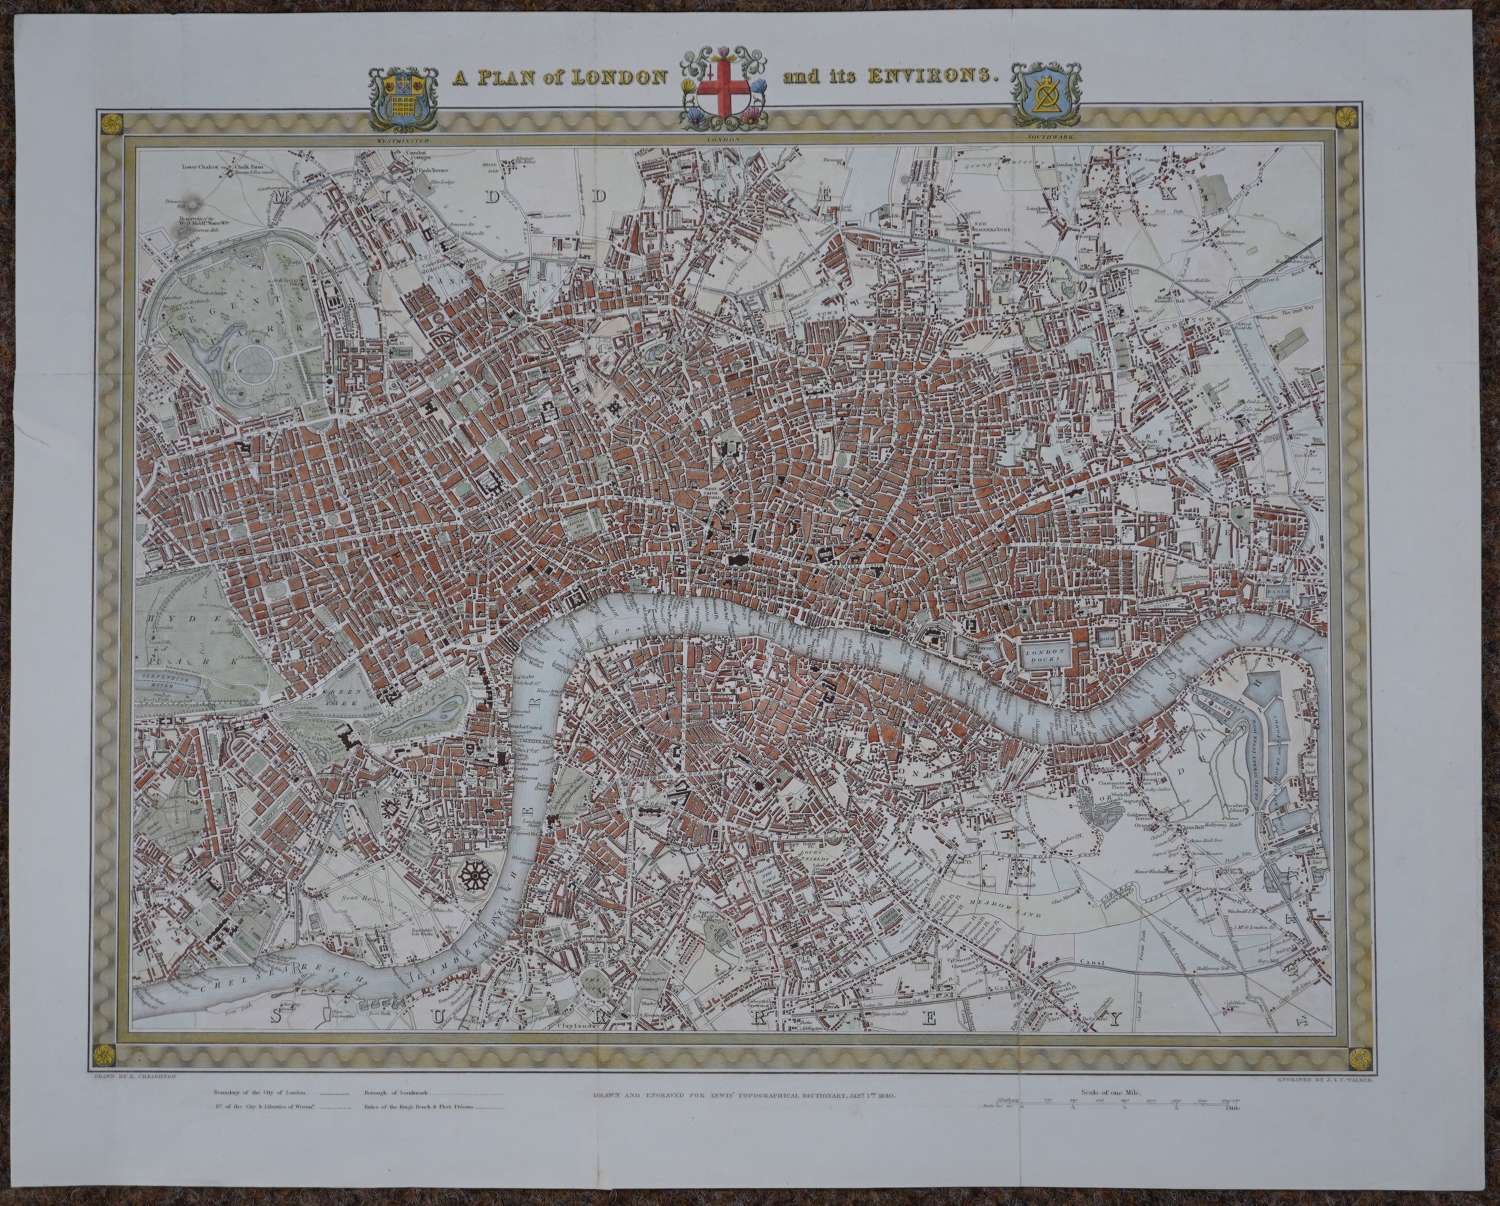 A Plan of London and its Environs by Richard Creighton